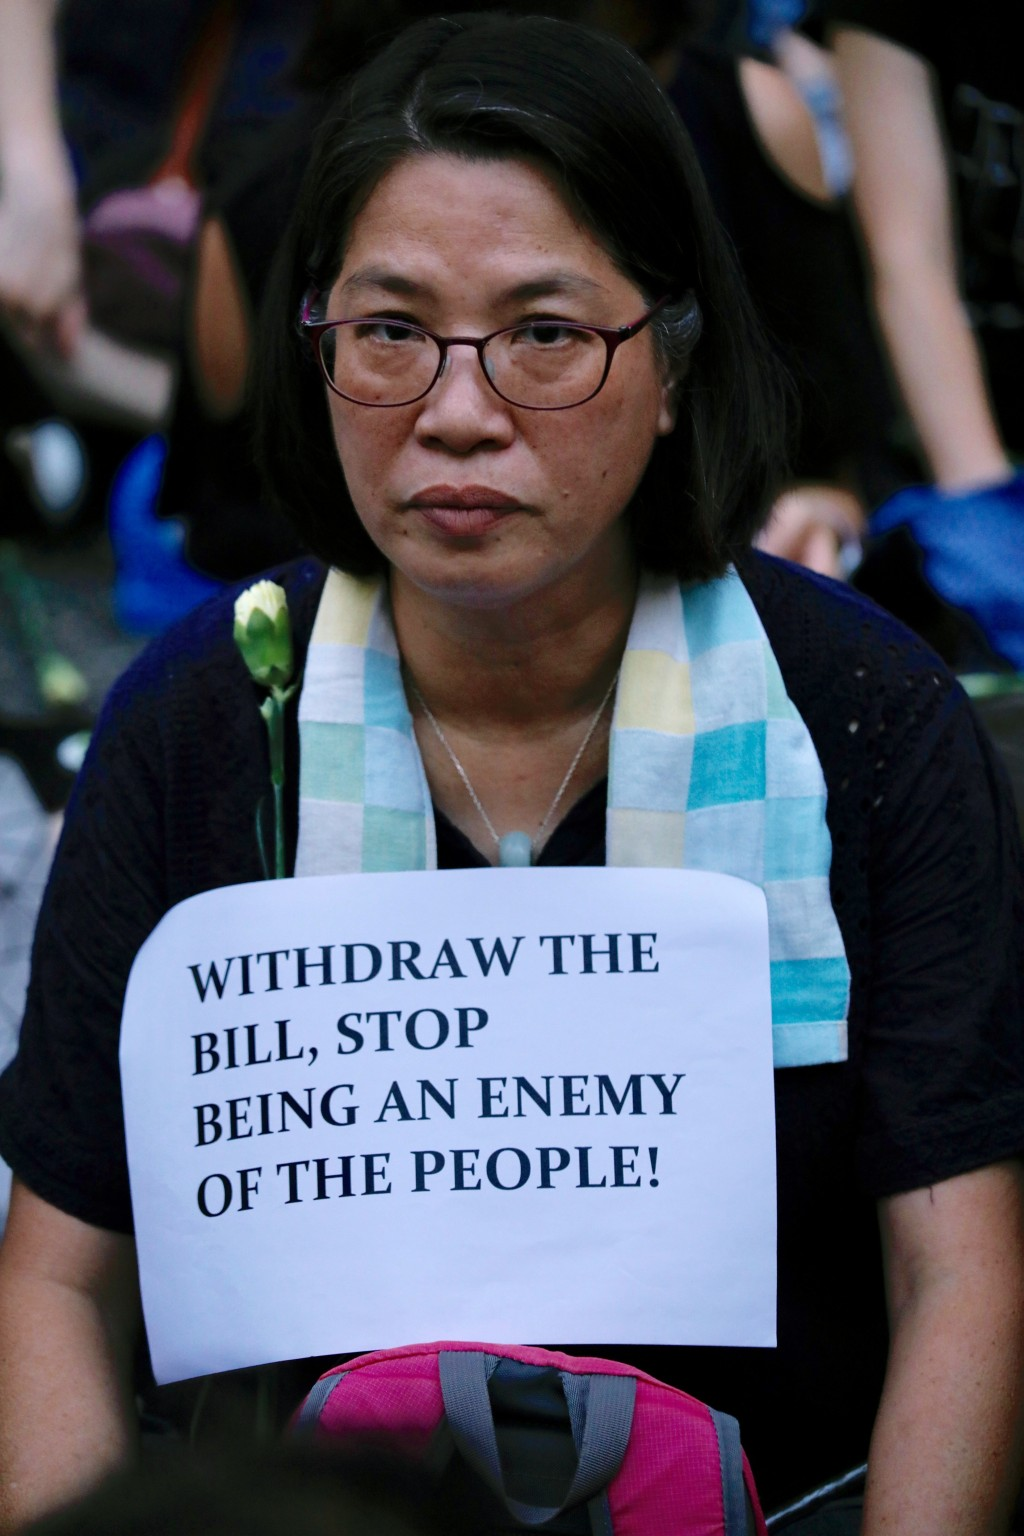 A woman joins hundreds of mothers protesting against the amendments to the extradition law after Wednesday's violent protest in Hong Kong on Friday, J